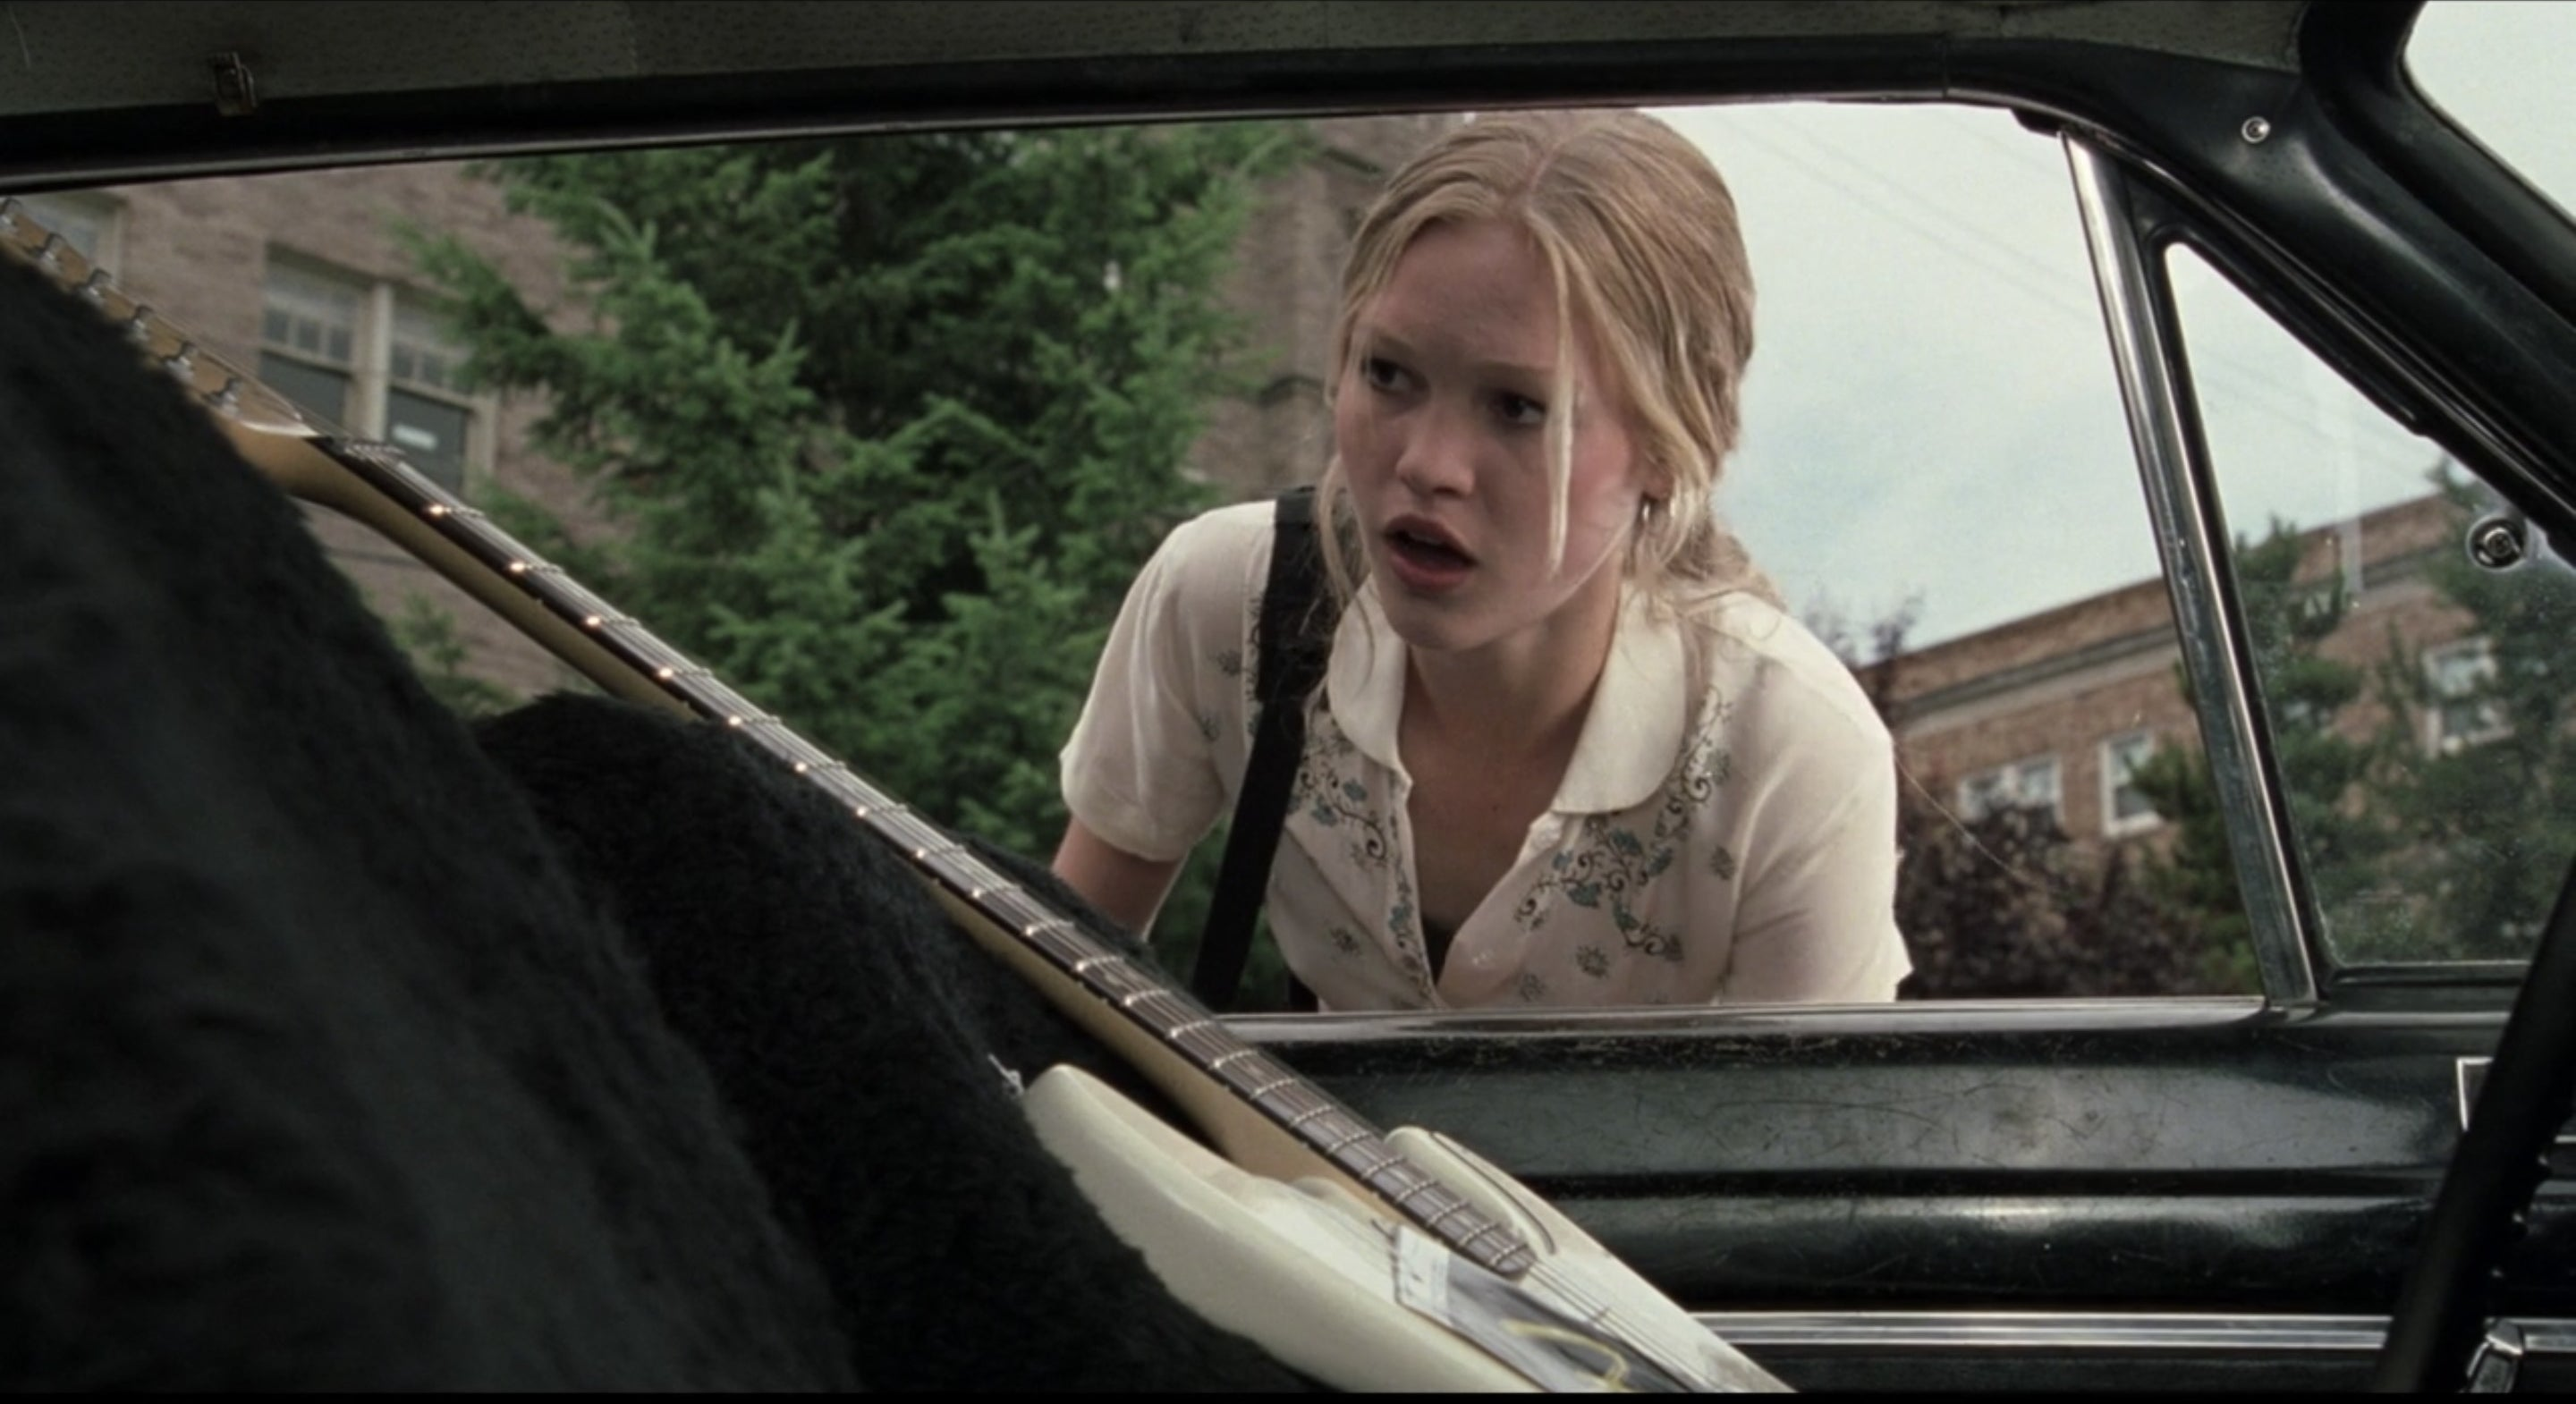 Kat is shocked to see a guitar sitting in her driver's seat